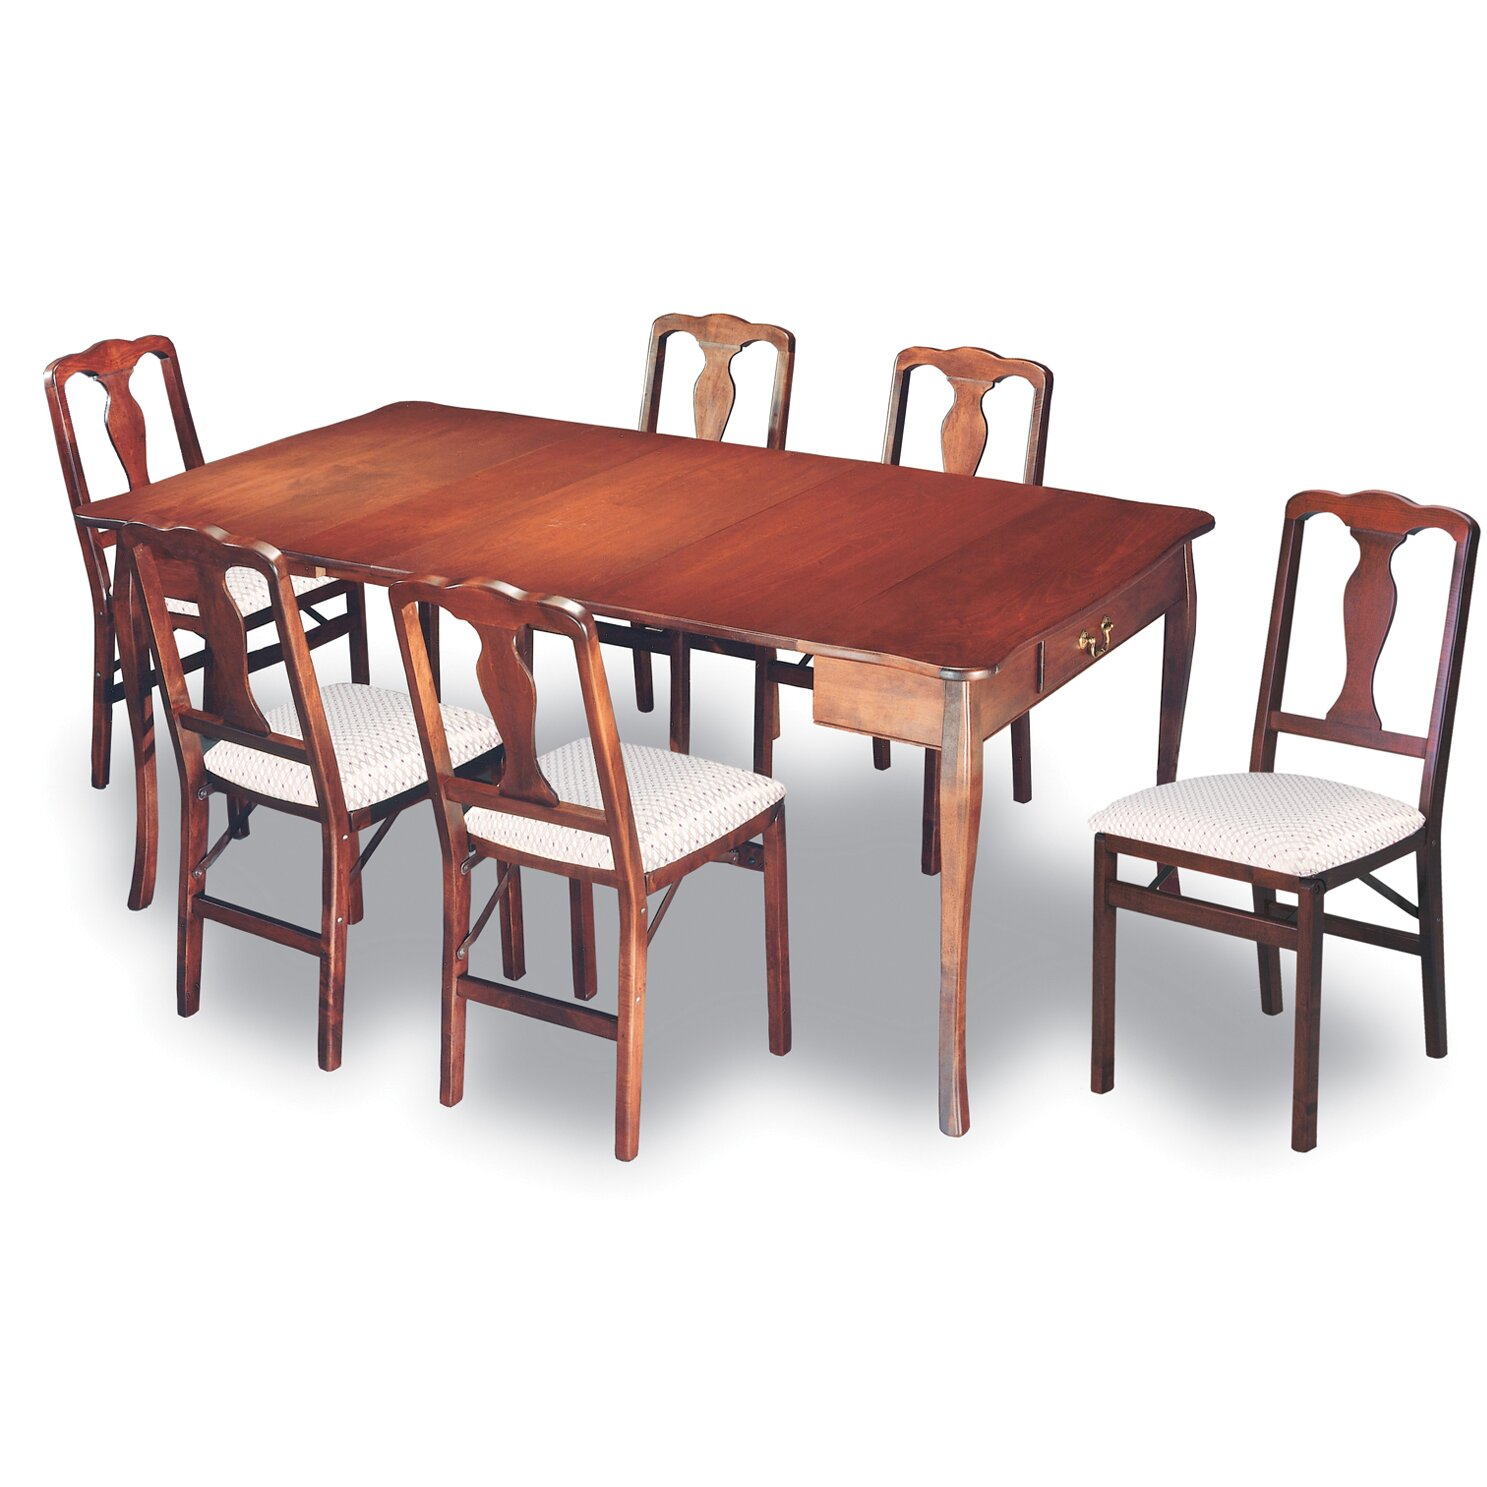 Stakmore traditional expanding dining table reviews